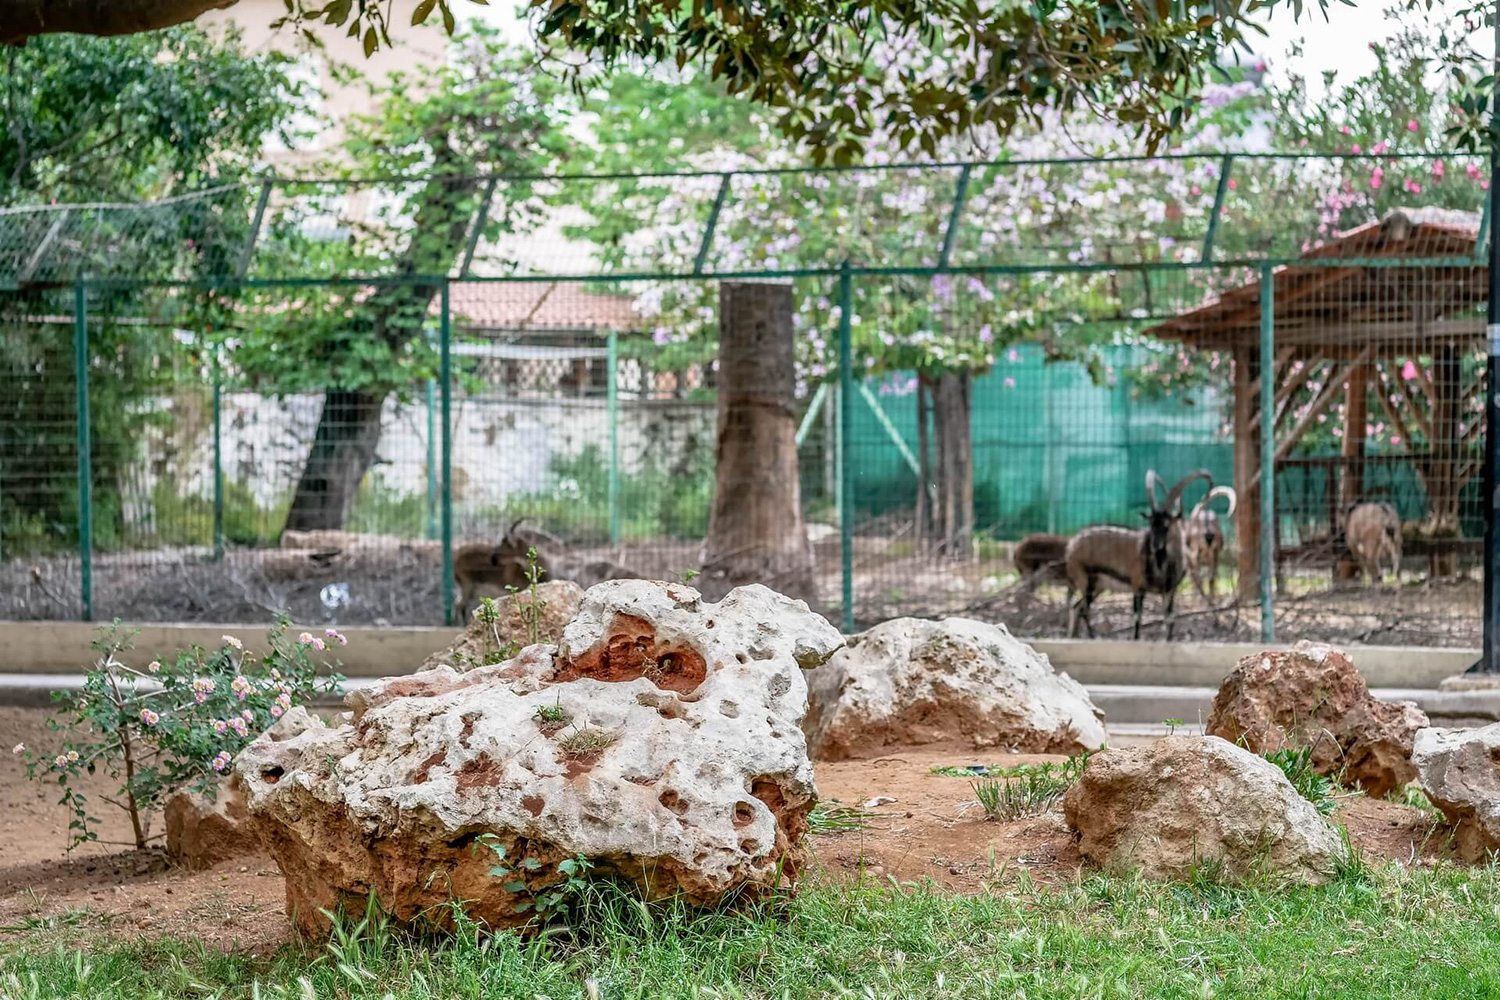 zoo of the gardens